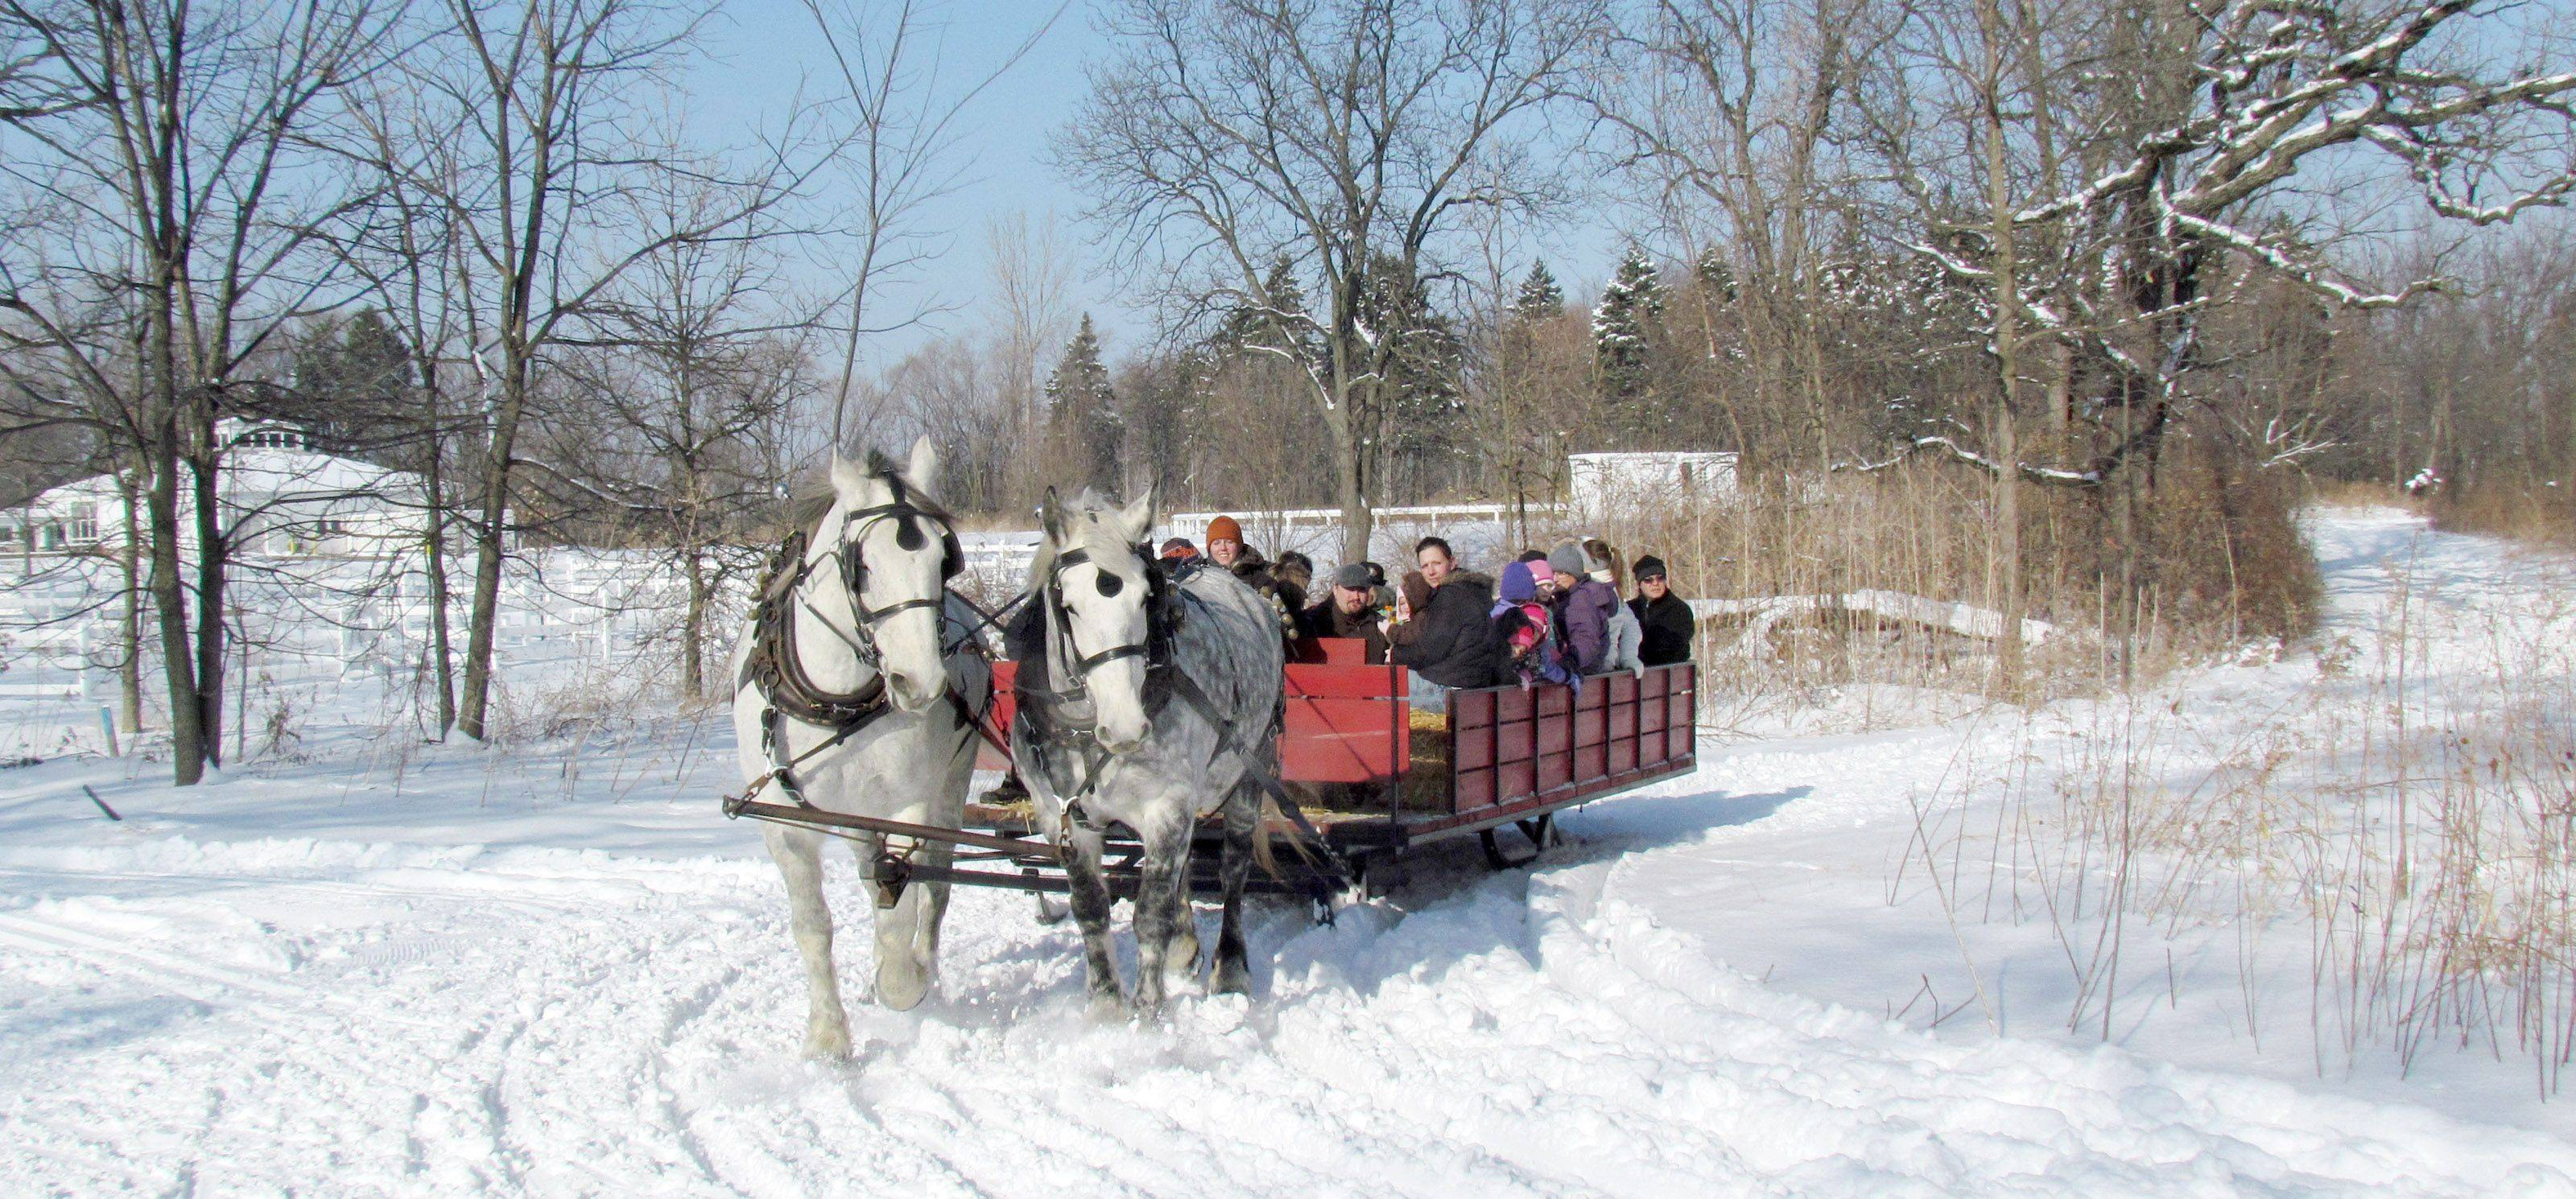 Forest Preserve staff member Cameron Pauling is at the reigns as she takes people on a slow sleigh ride through the Danada Forest Preserve in Wheaton Tuesday.